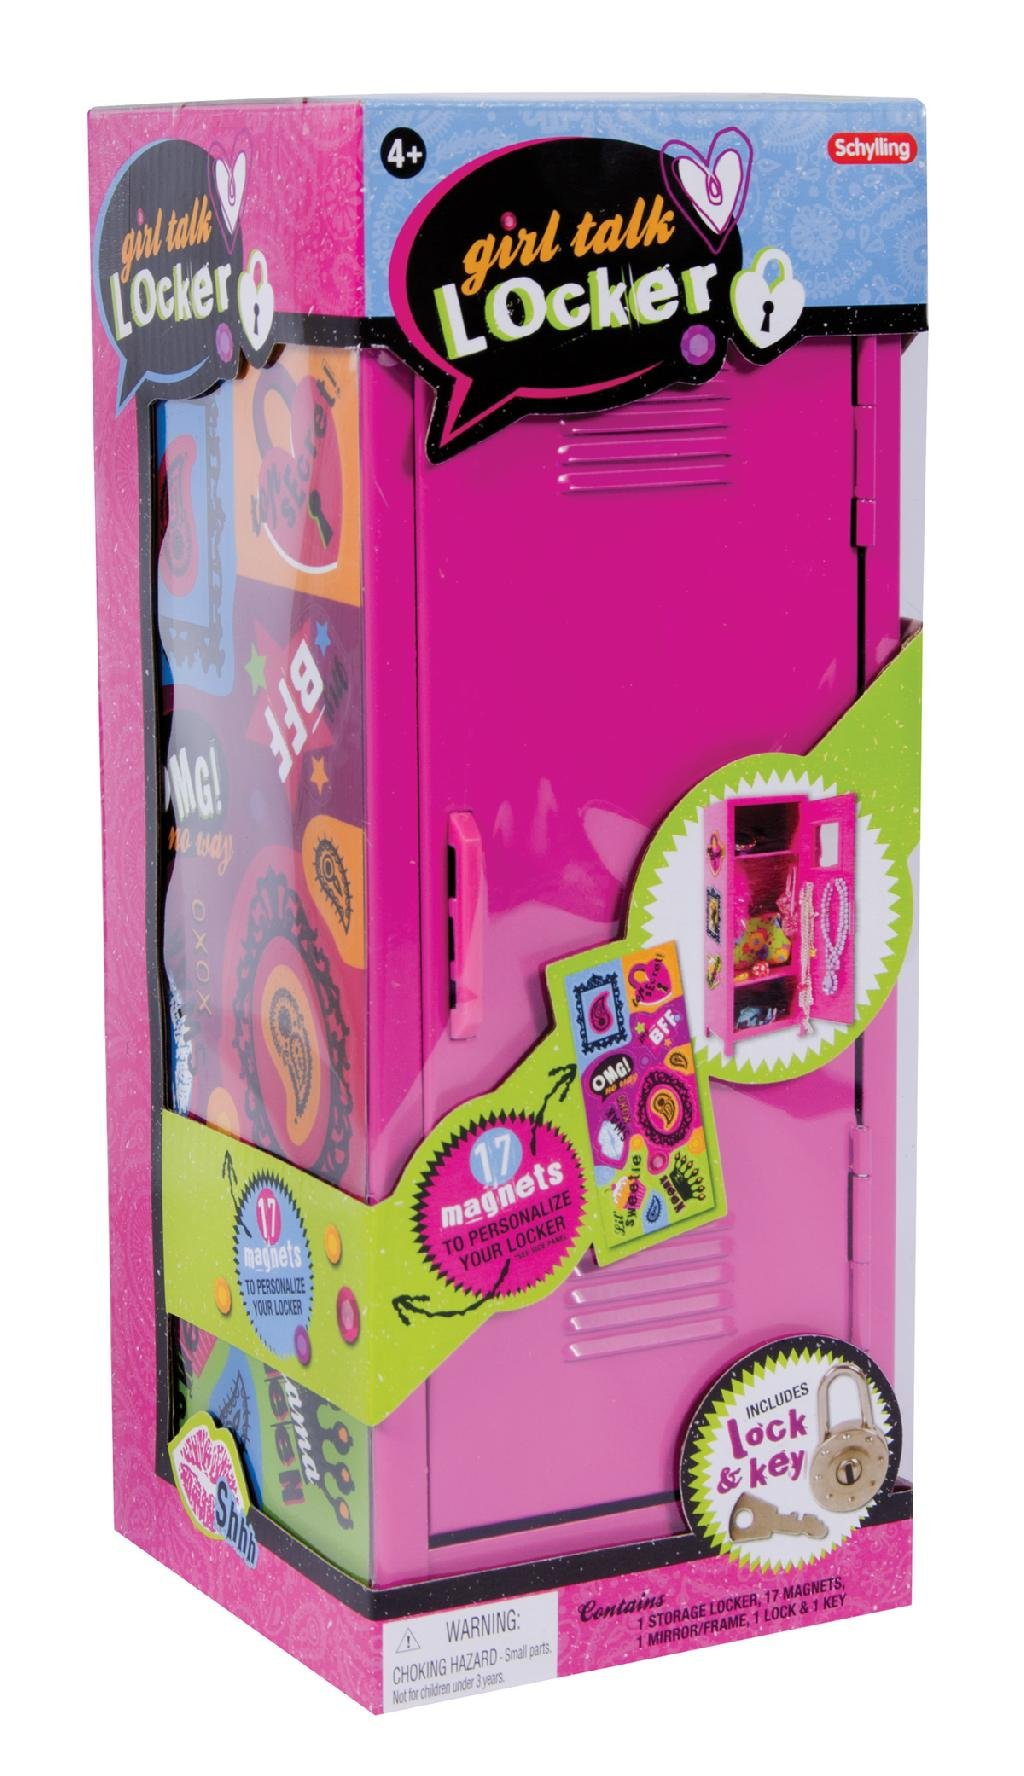 Schylling MLM Girl's Talk Locker, 11.25-inch by Schylling